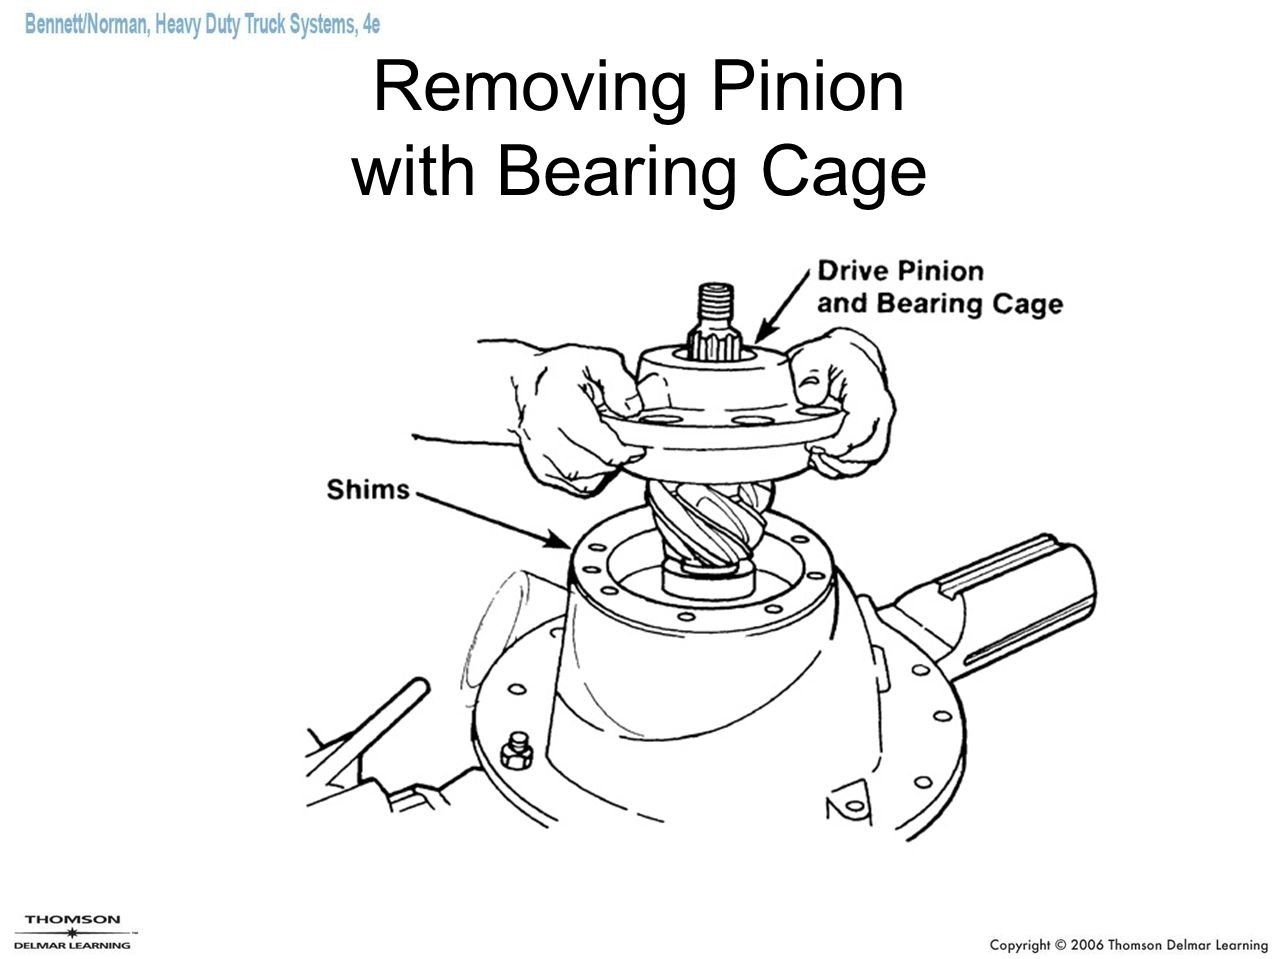 Removing Pinion with Bearing Cage